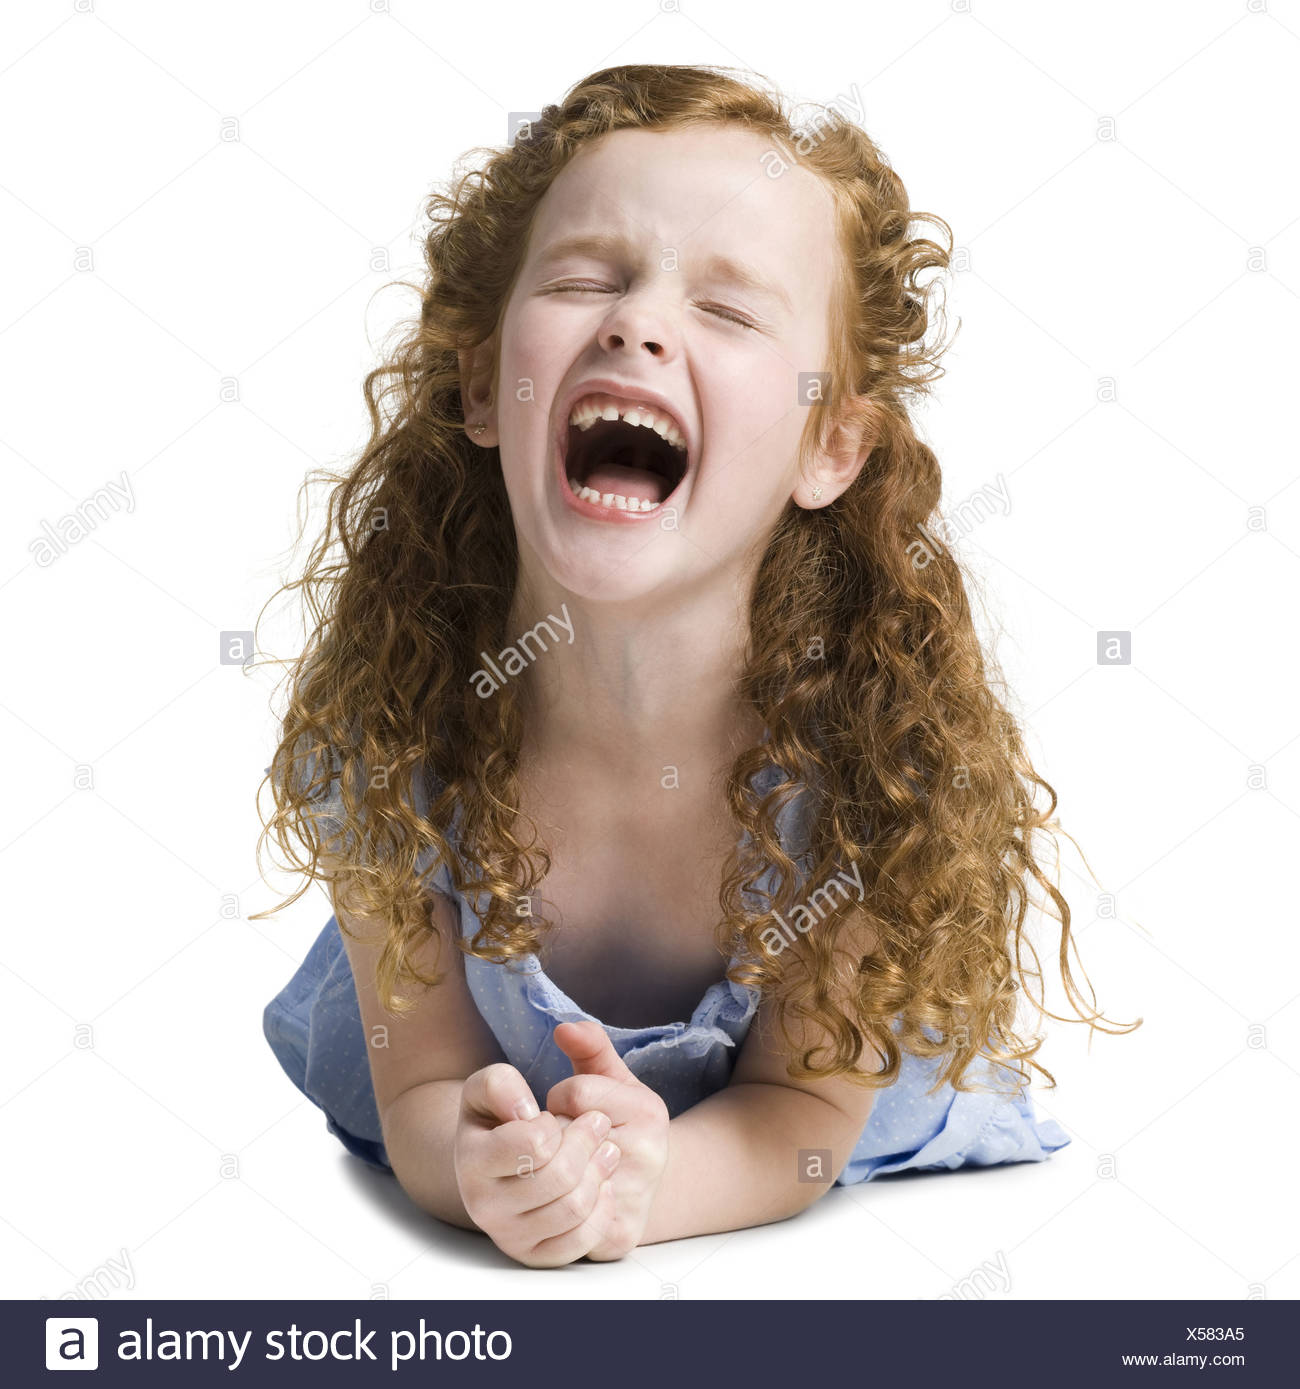 girl in a blue shirt - Stock Image